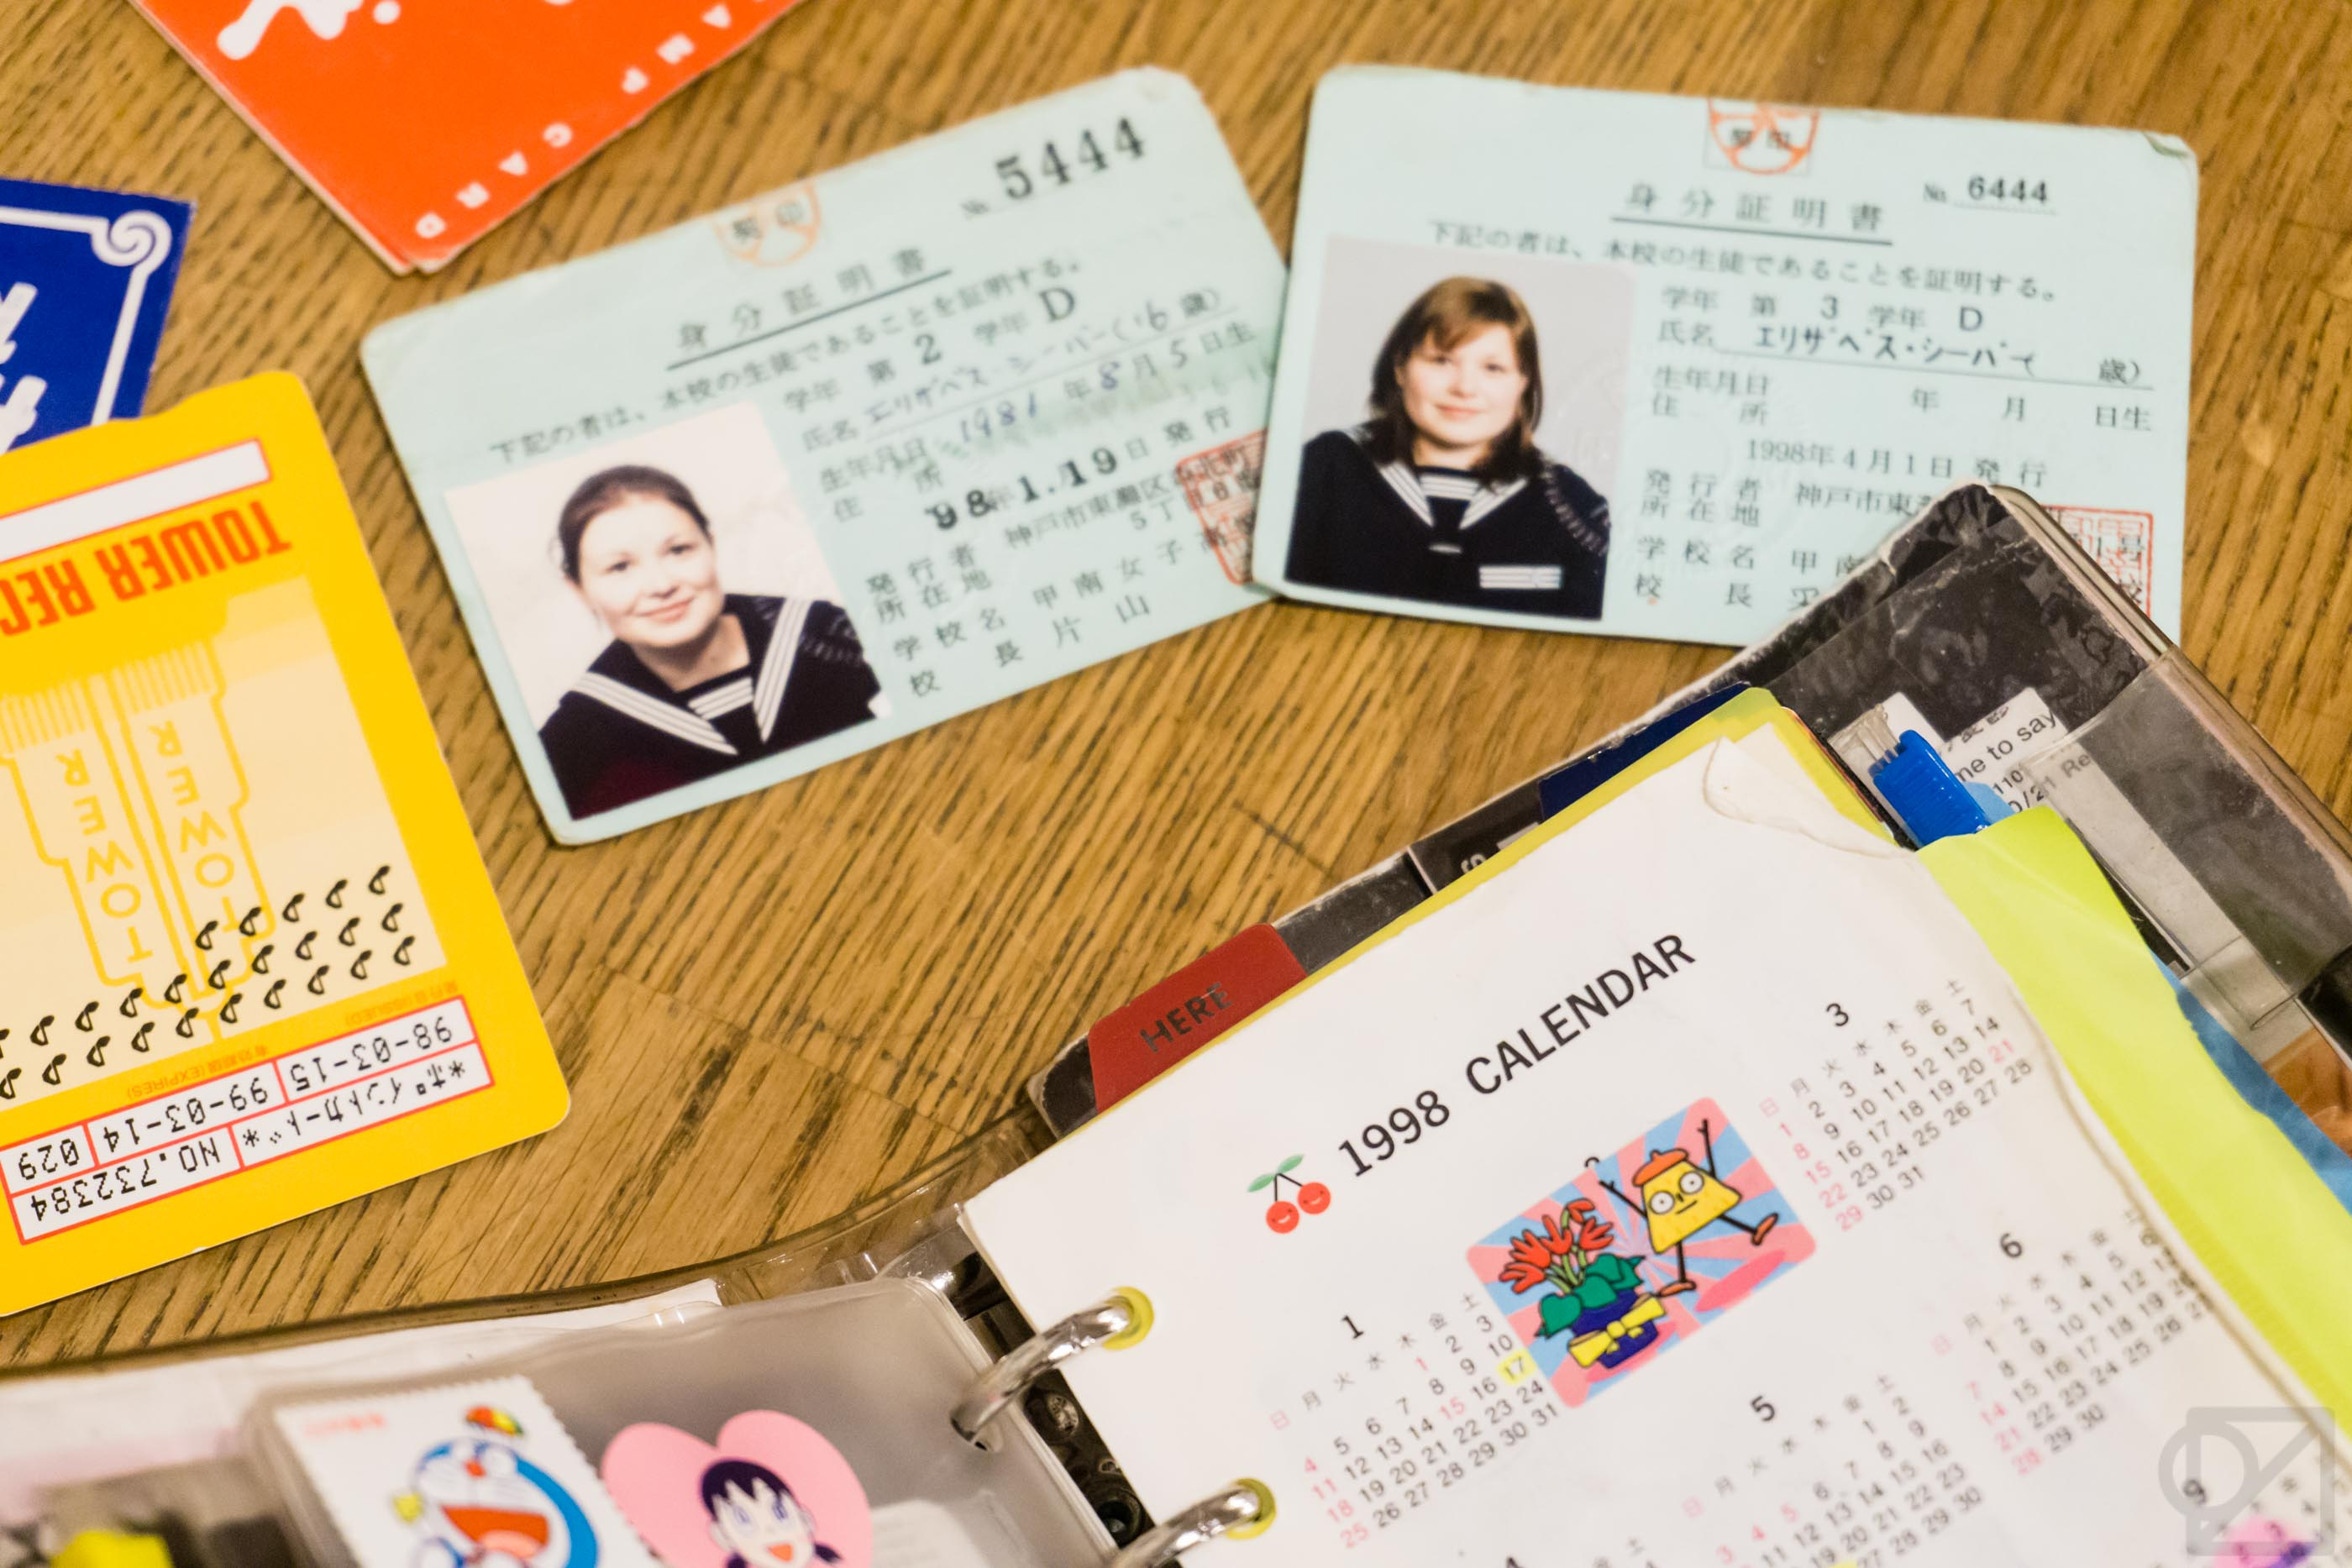 Owner Liz brought in her AMAZING high school planner from her time in Kobe, Japan.